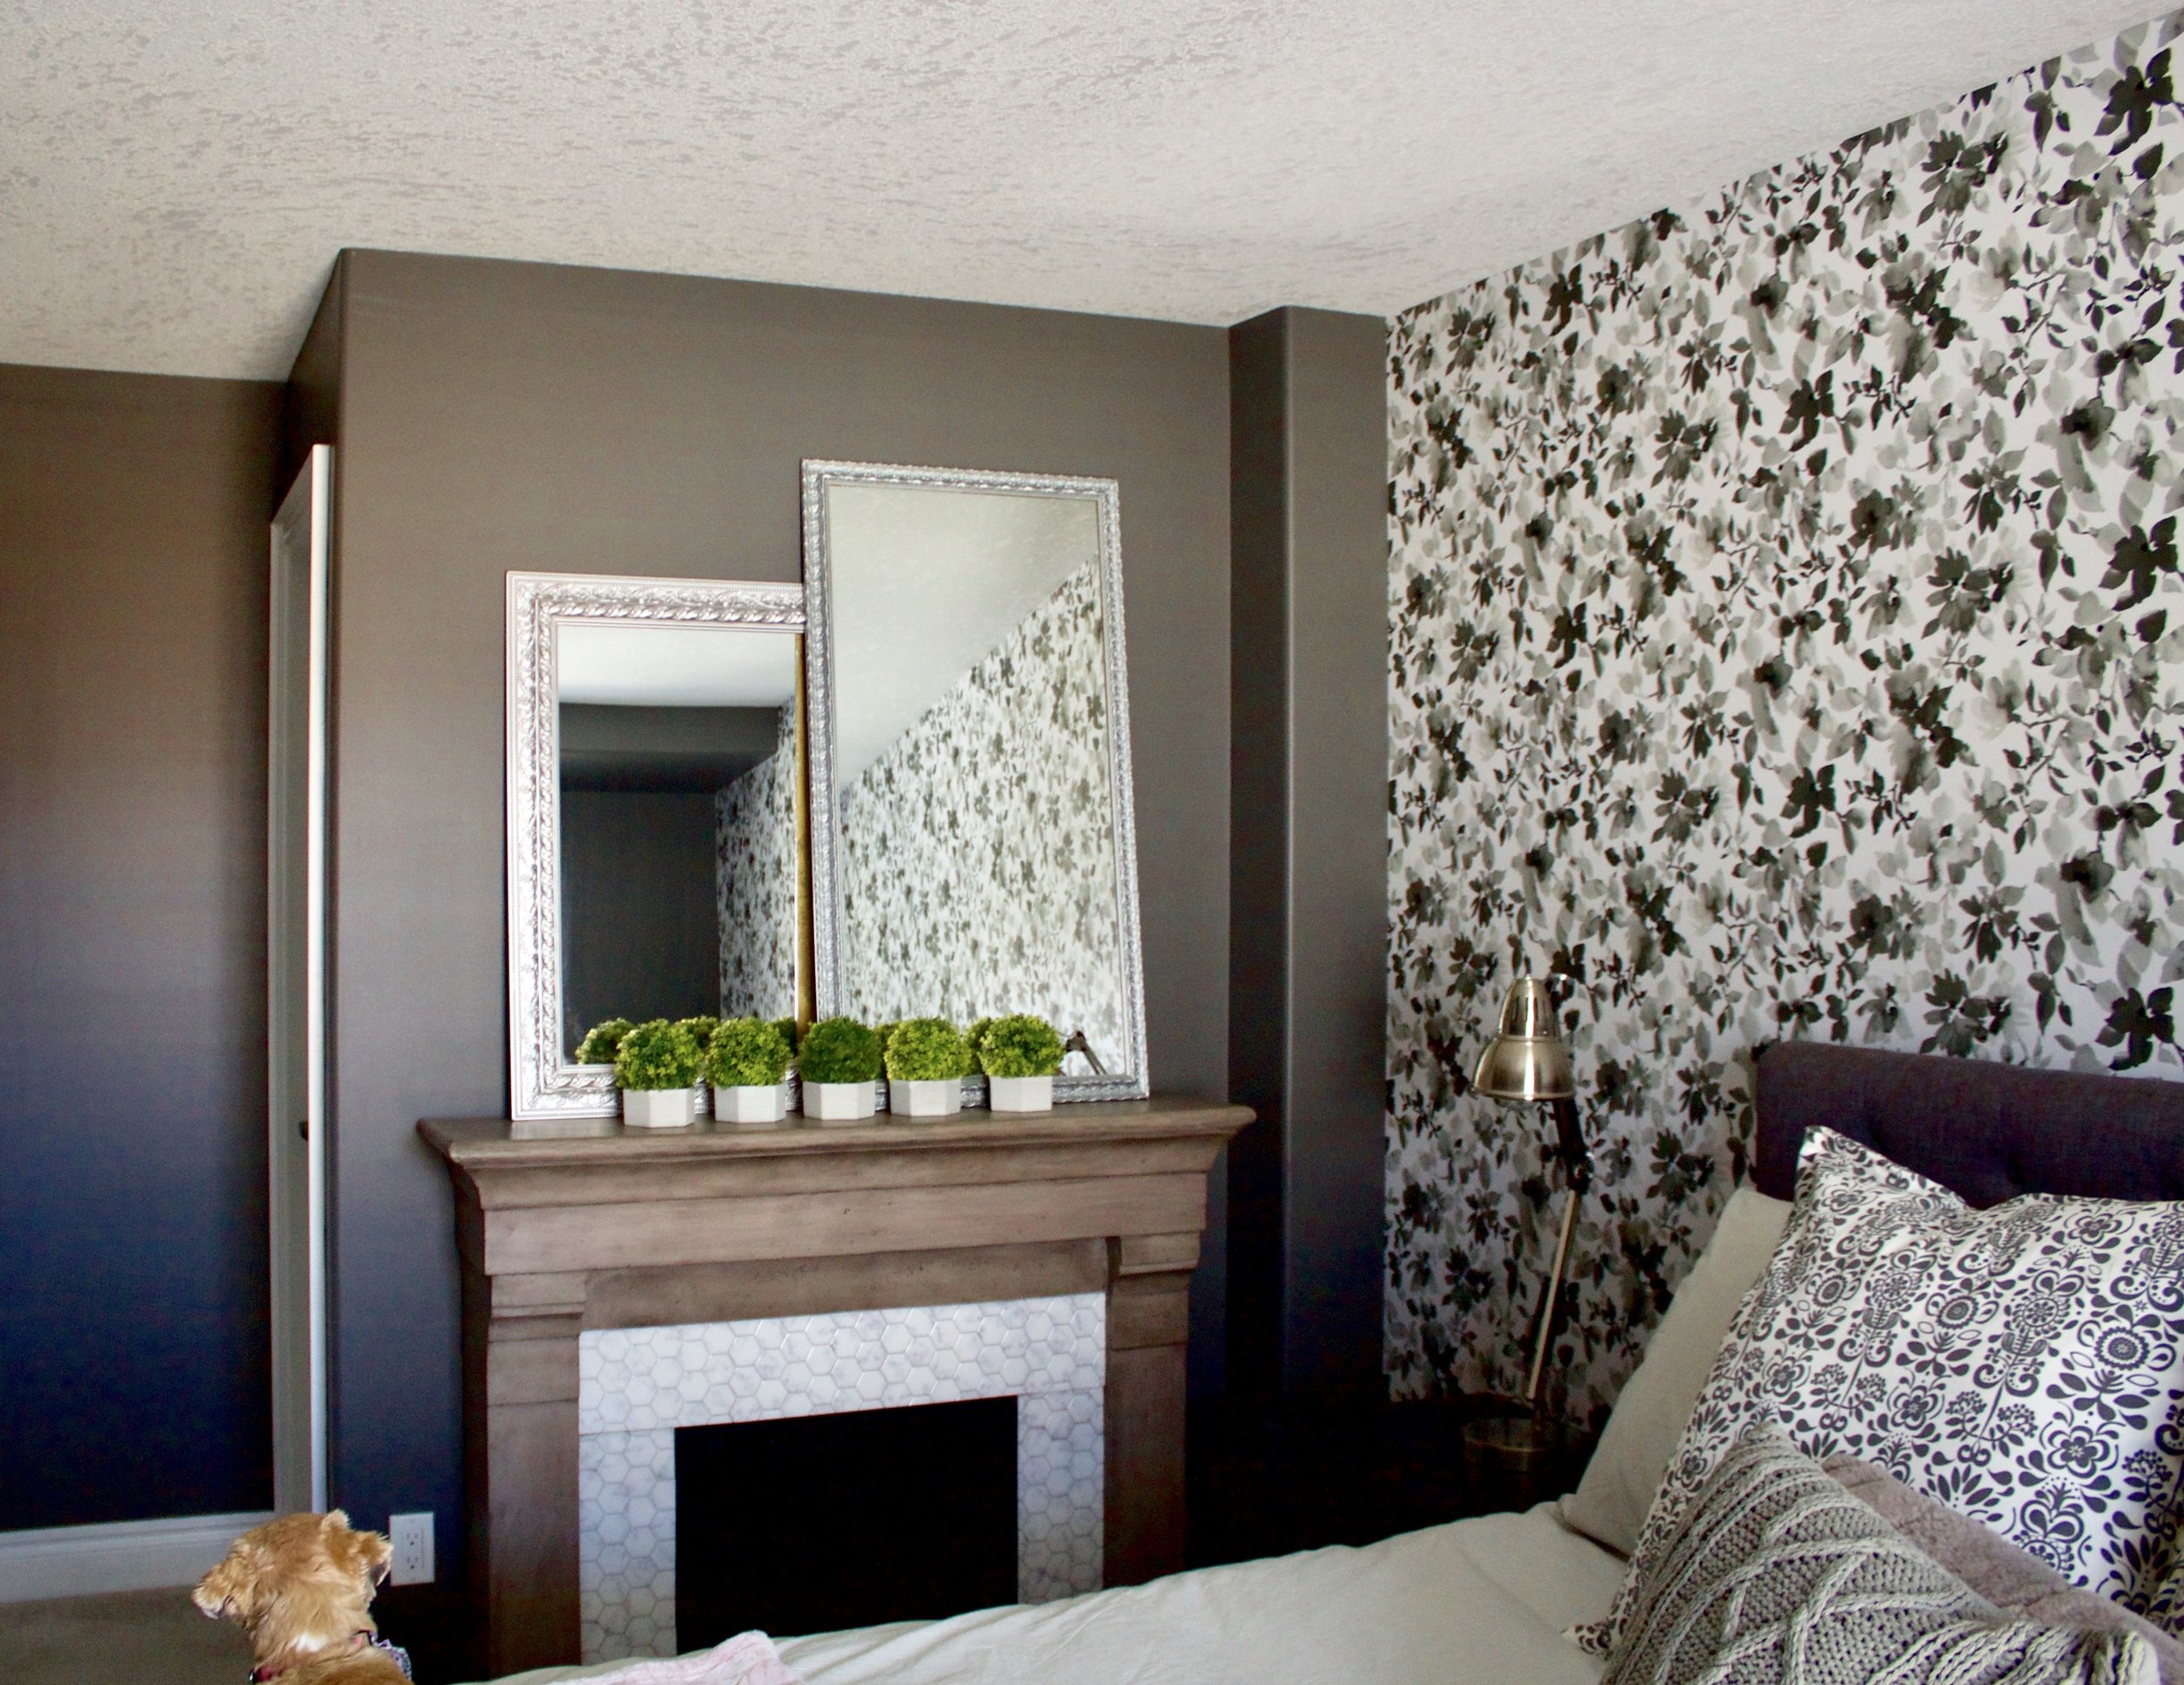 Watercolour Floral  in Black by RoomMates Decor & Stick Tiles on Fireplace are also from RoomMates and you can read all about it on their blog by clicking  HERE